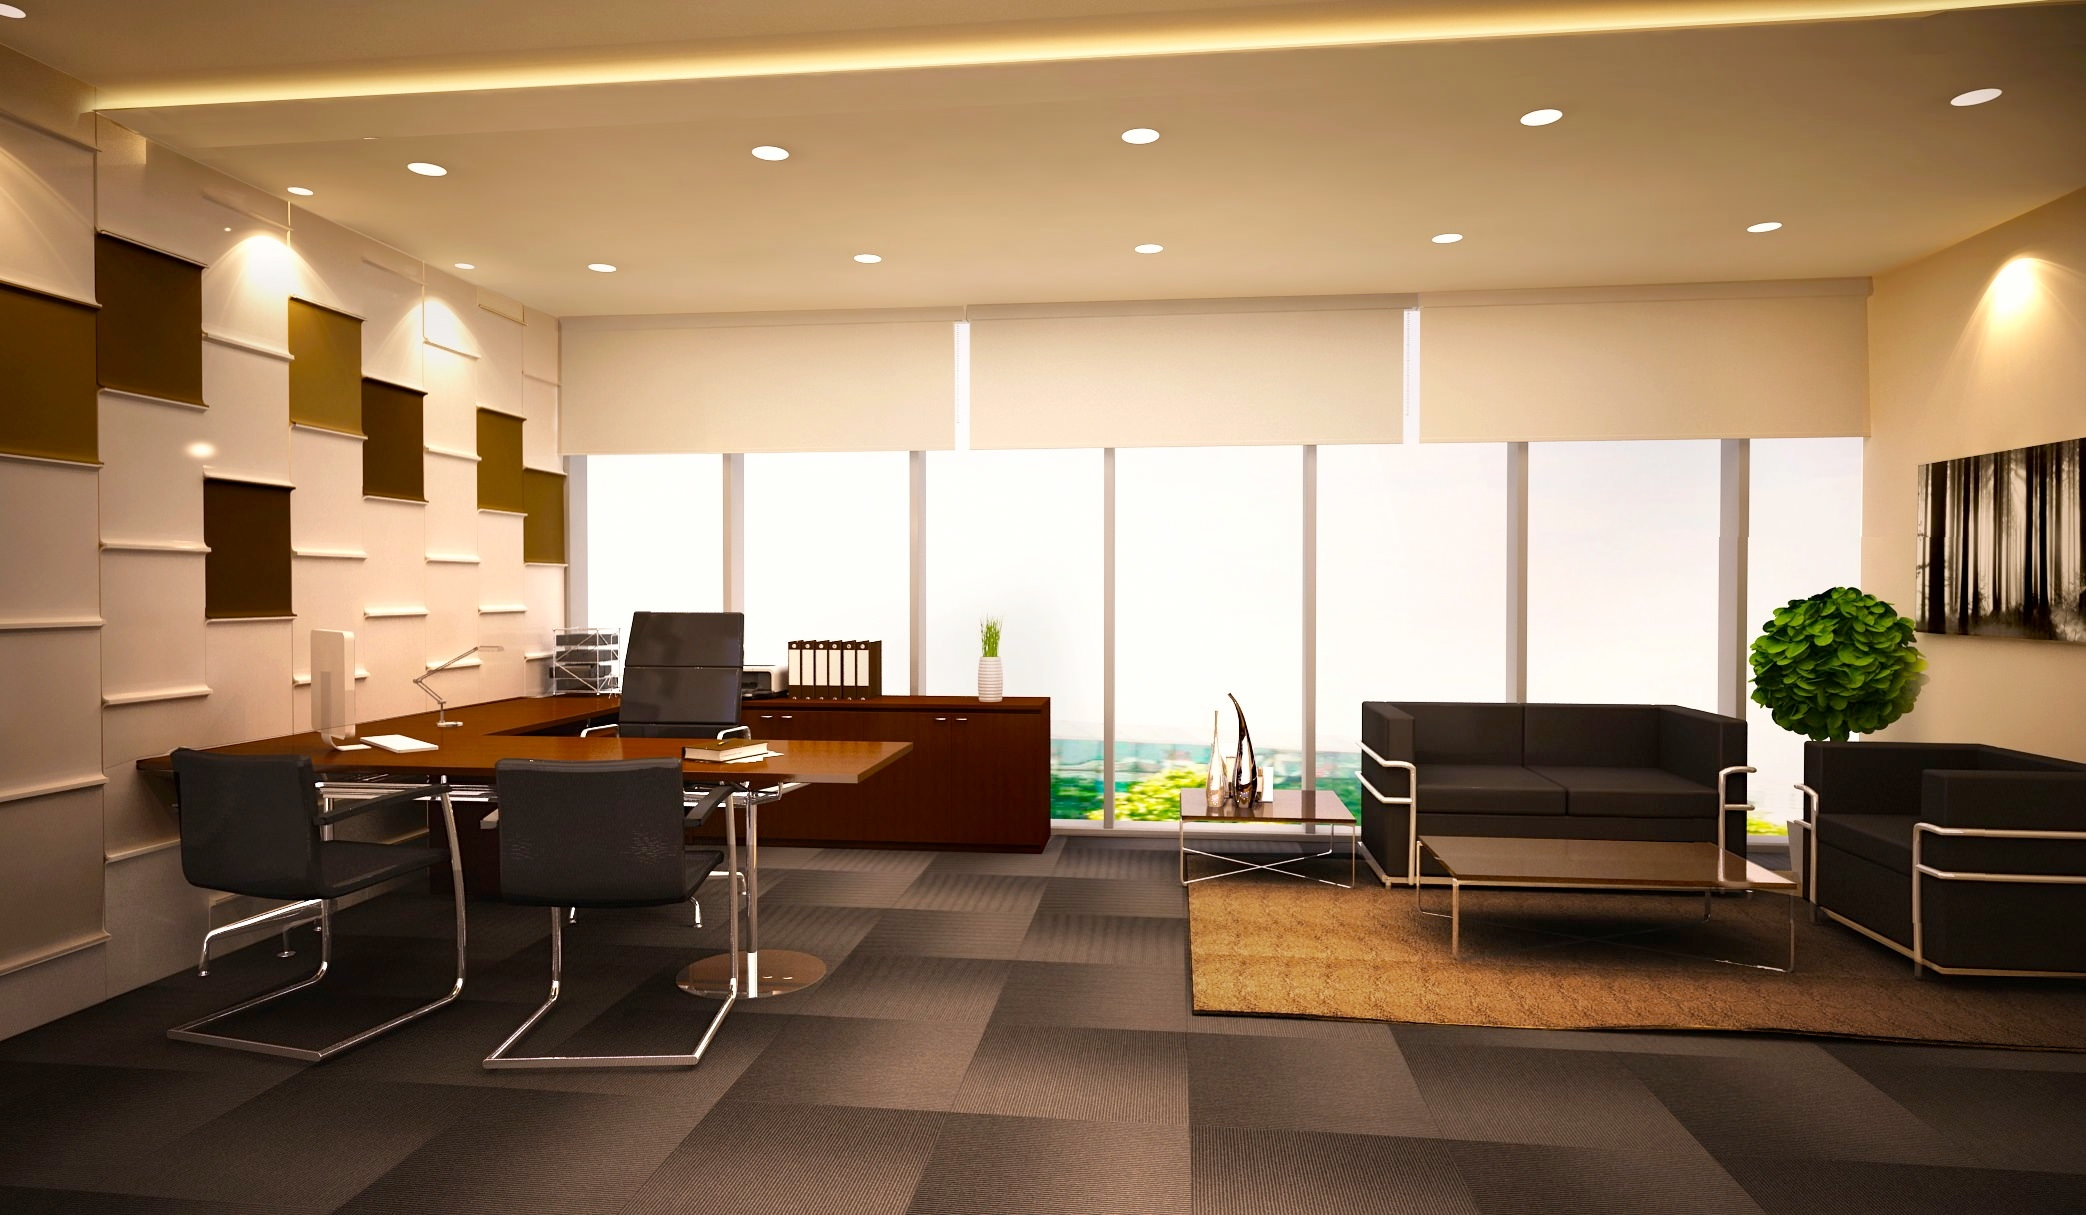 19 minimalist office designs decorating ideas design for Interior design of office space